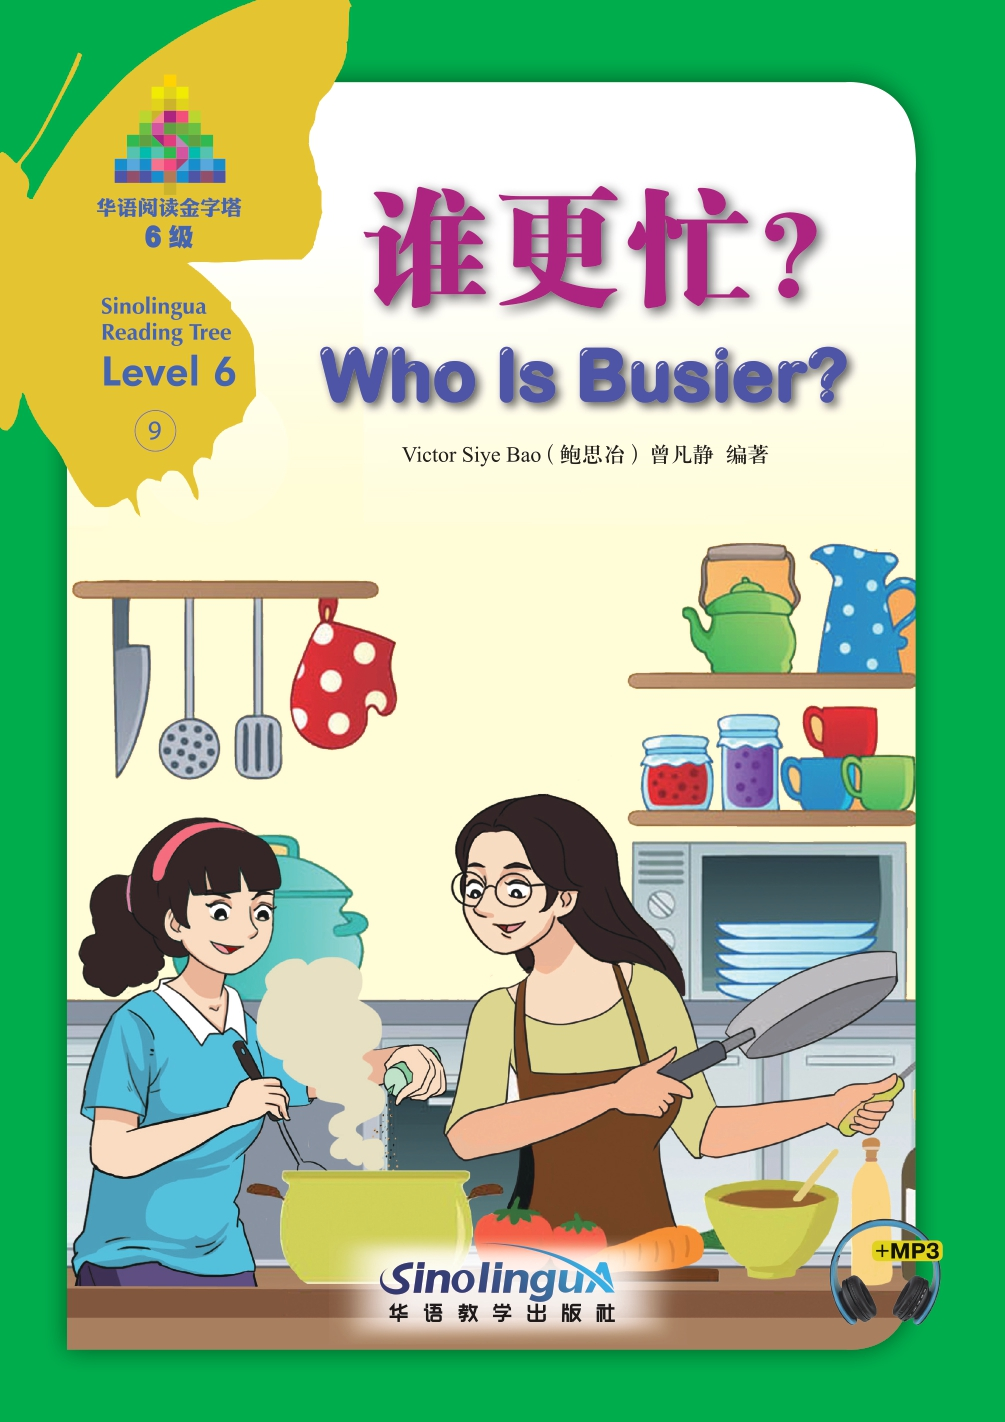 Sinolingua Reading Tree  Level 6 ⑨ Who Is Busier?